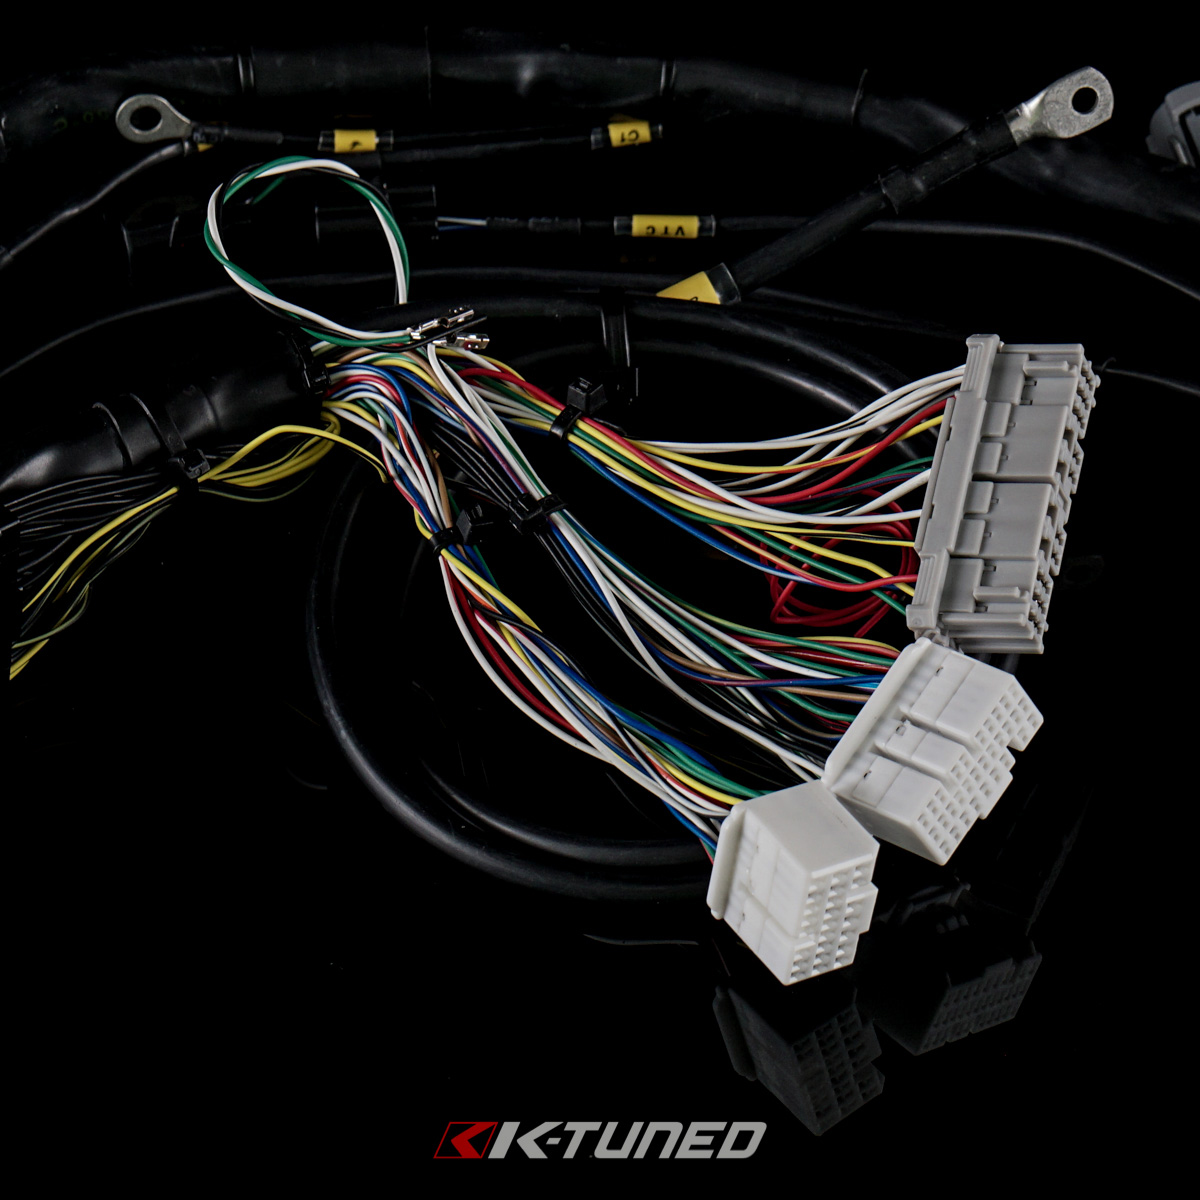 KTH 204 ENG_020 k series tucked engine harness rsx tucked wire harness at gsmportal.co